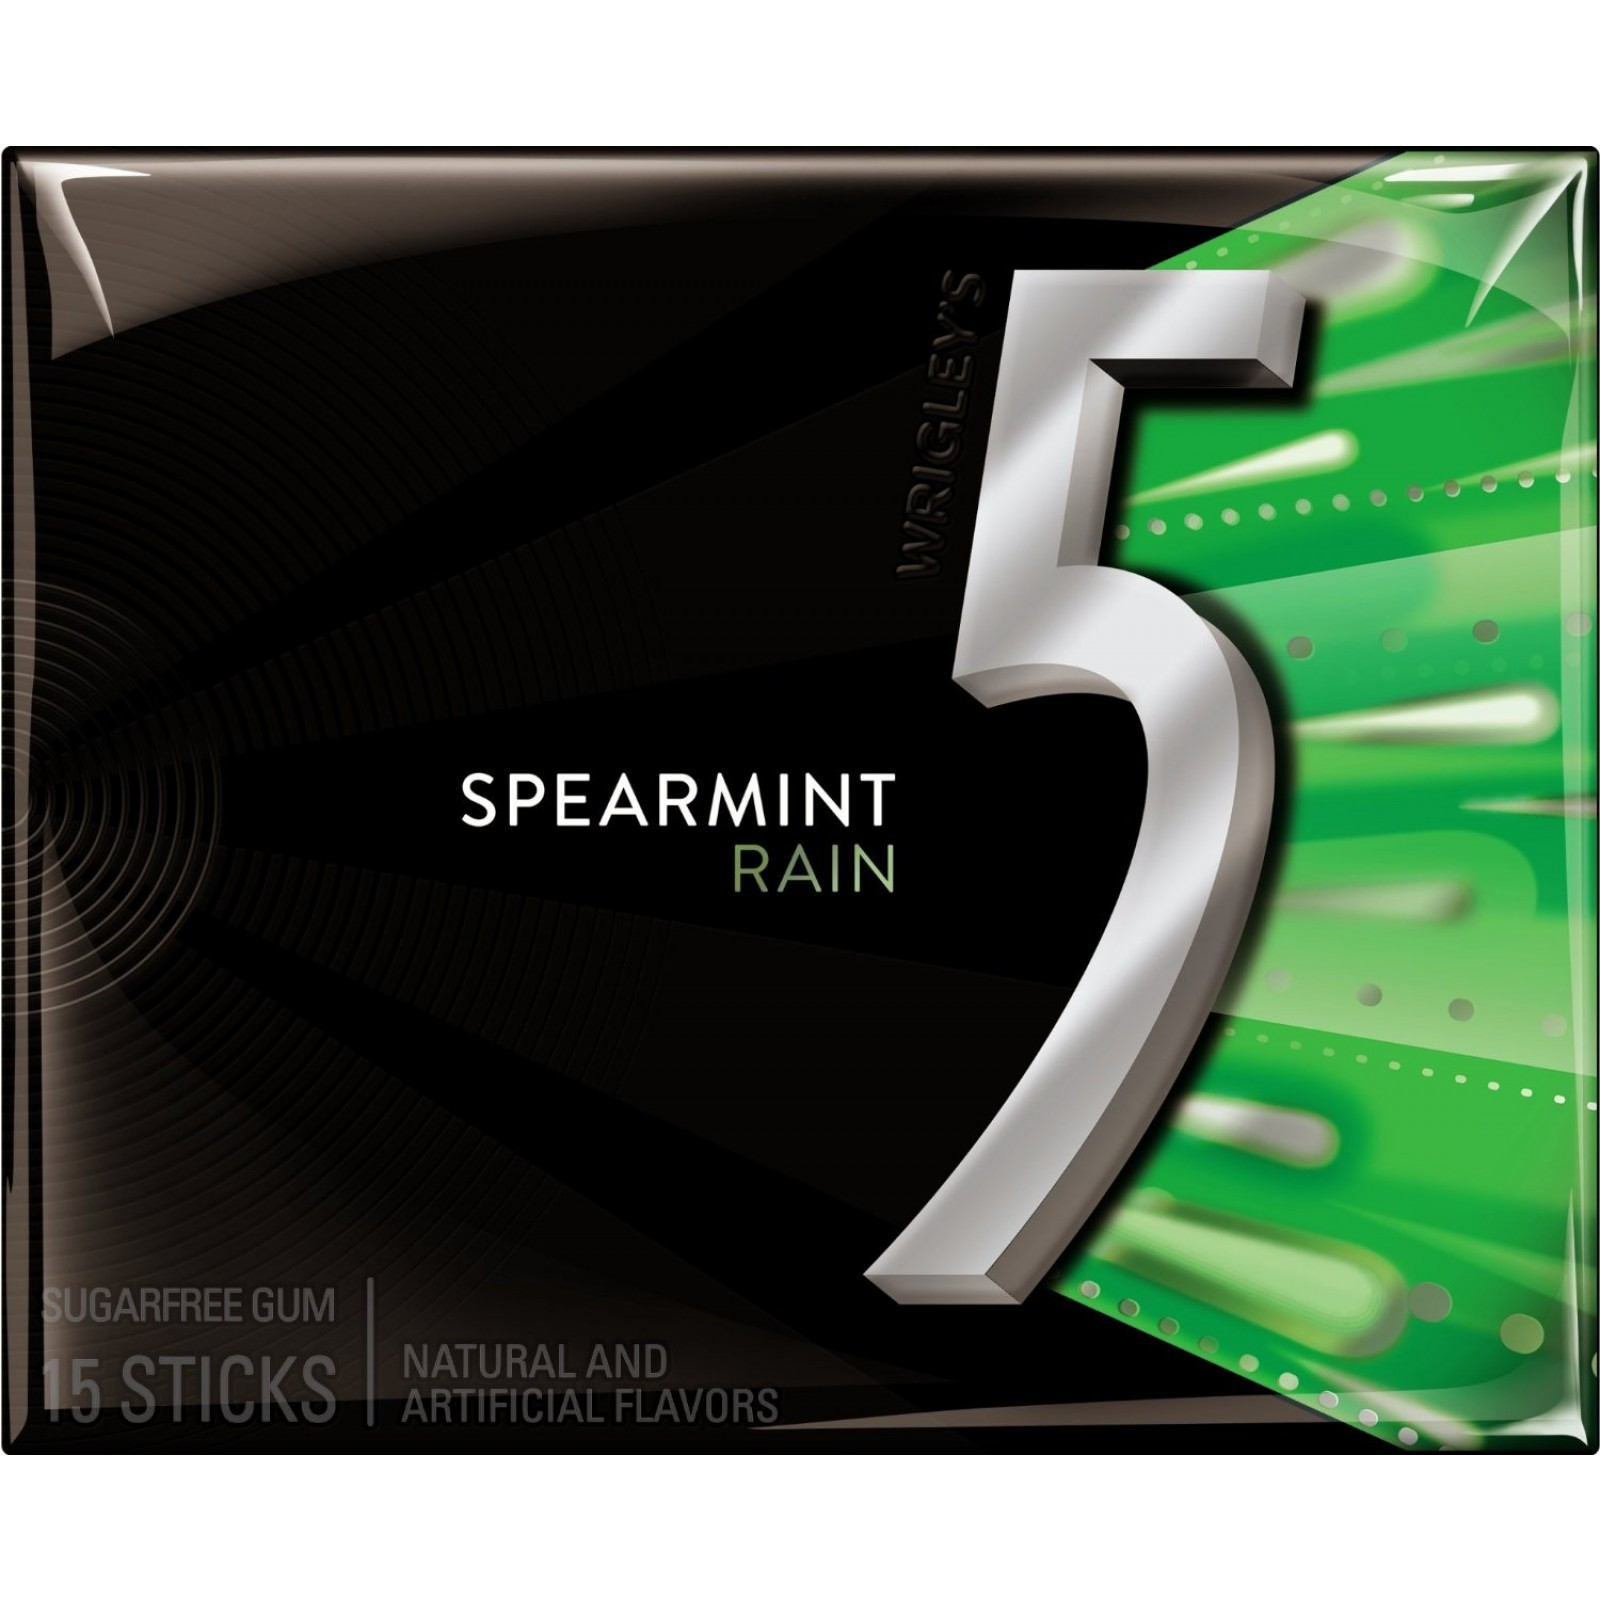 Buy 5 Gum Rain Spearmint Sugar Free